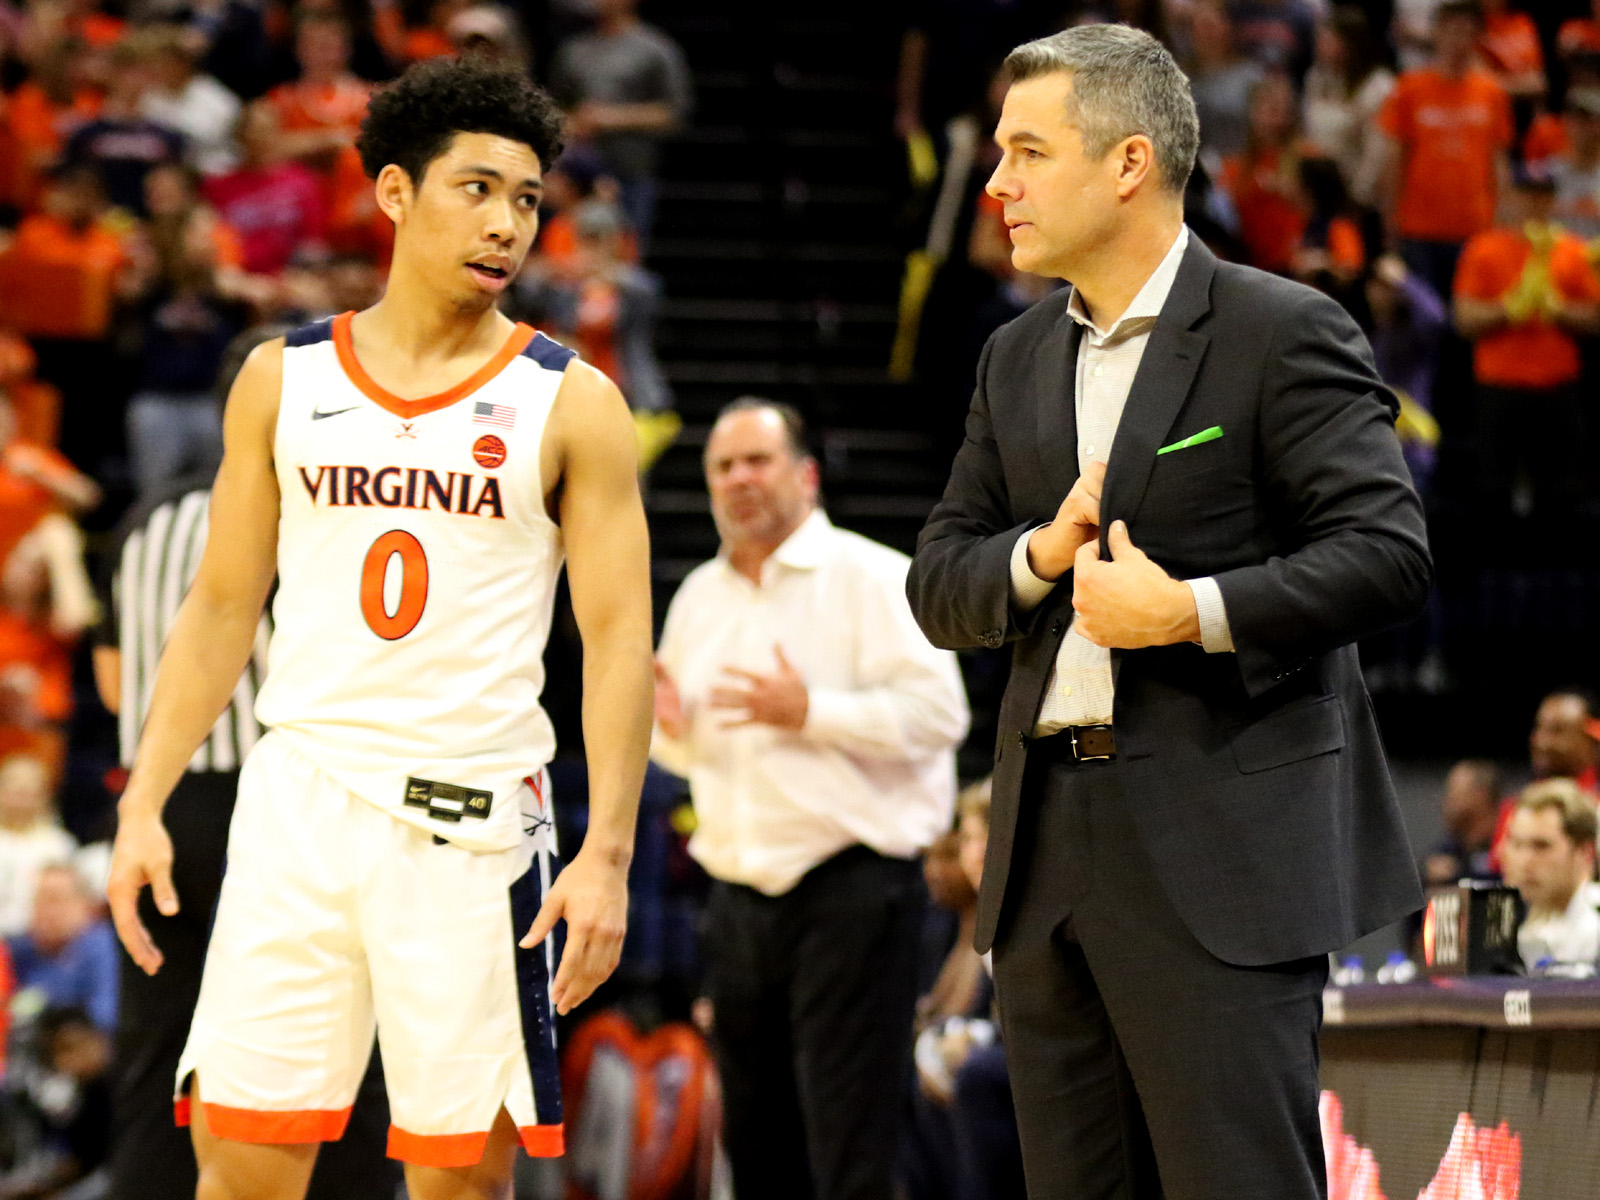 Virginia finished last season strong with 11 wins in its final 12 games.